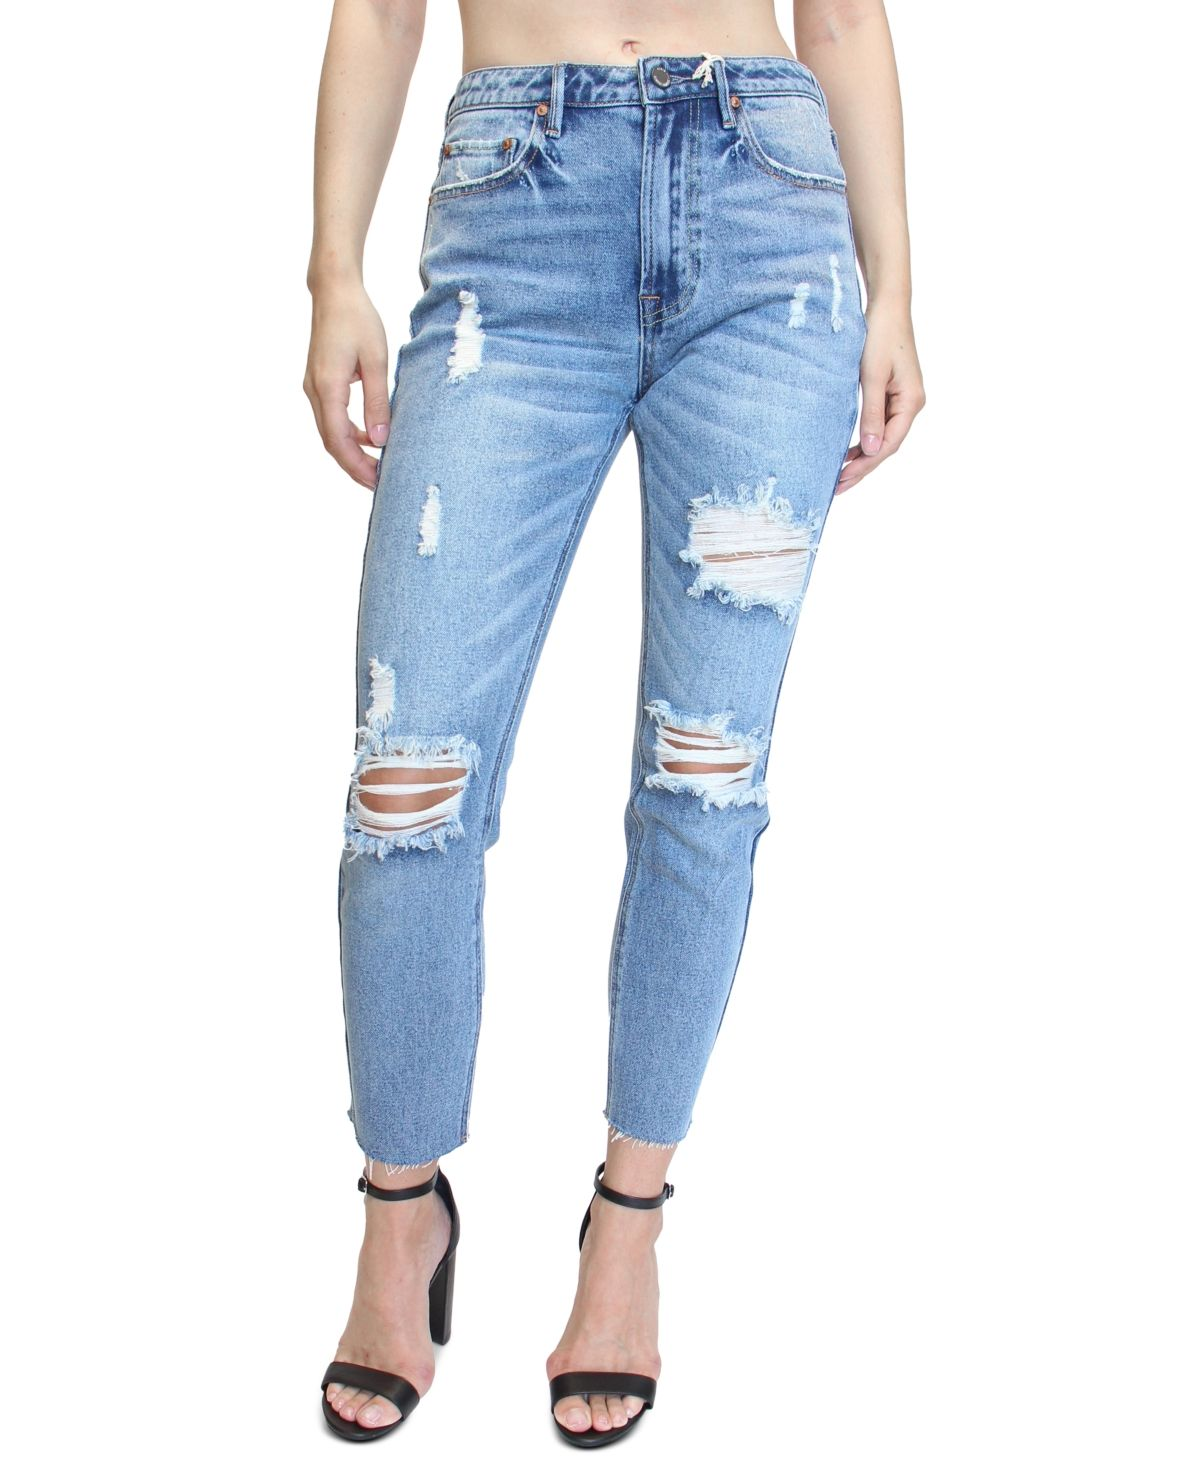 Destructed details put a laid-back spin on a cool, classic silhouette with these high-rise mom jeans from Almost Famous.